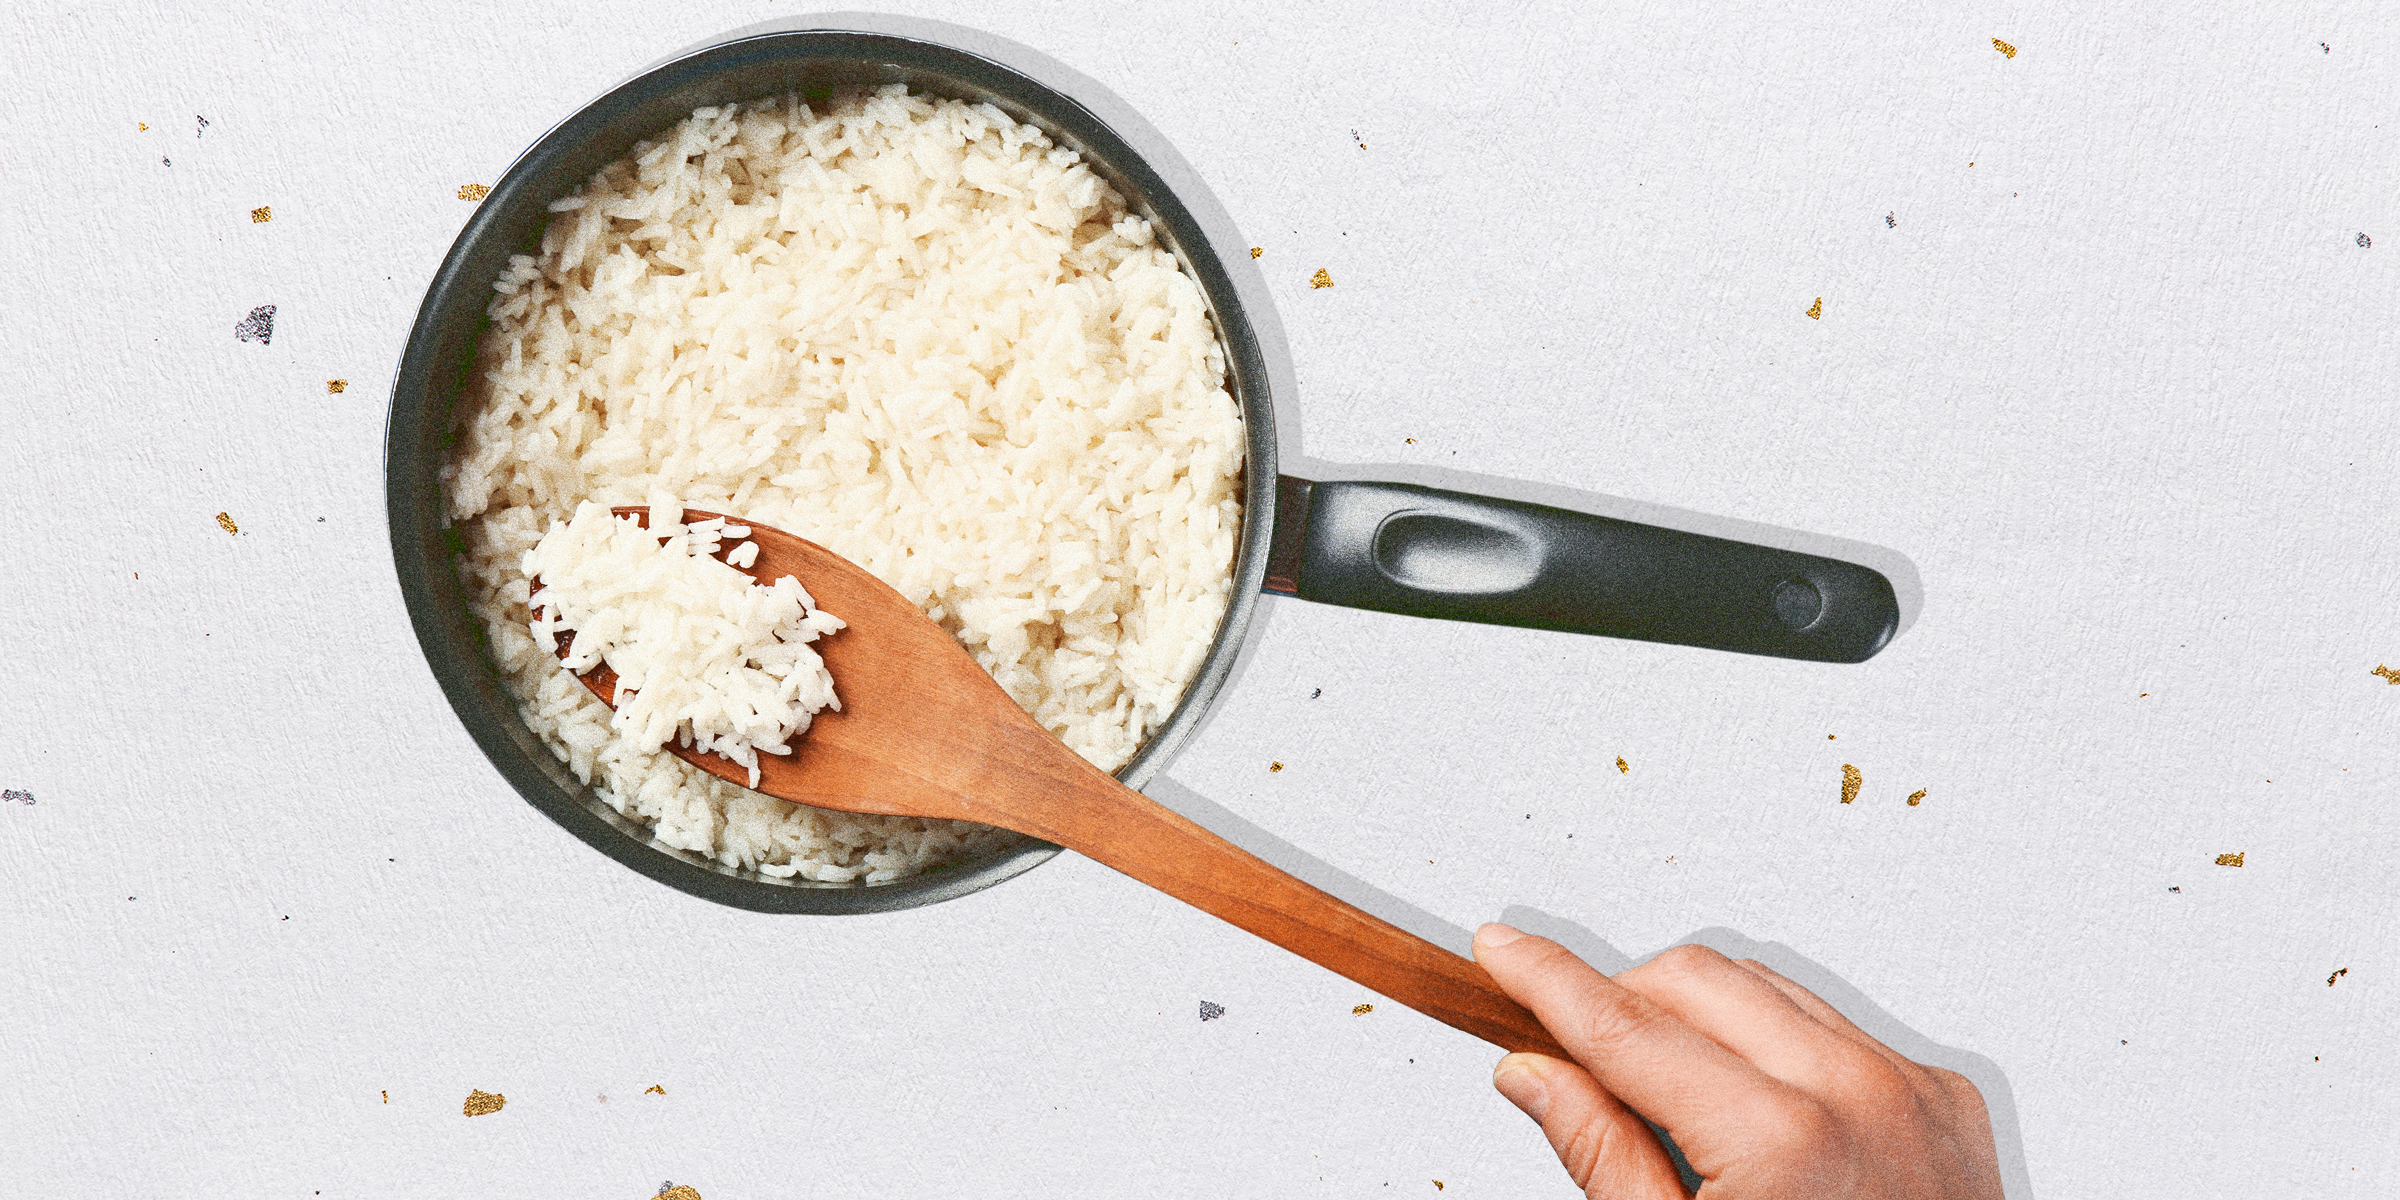 How To Cook Rice Learn How To Make Rice Perfectly Fluffy Every Time